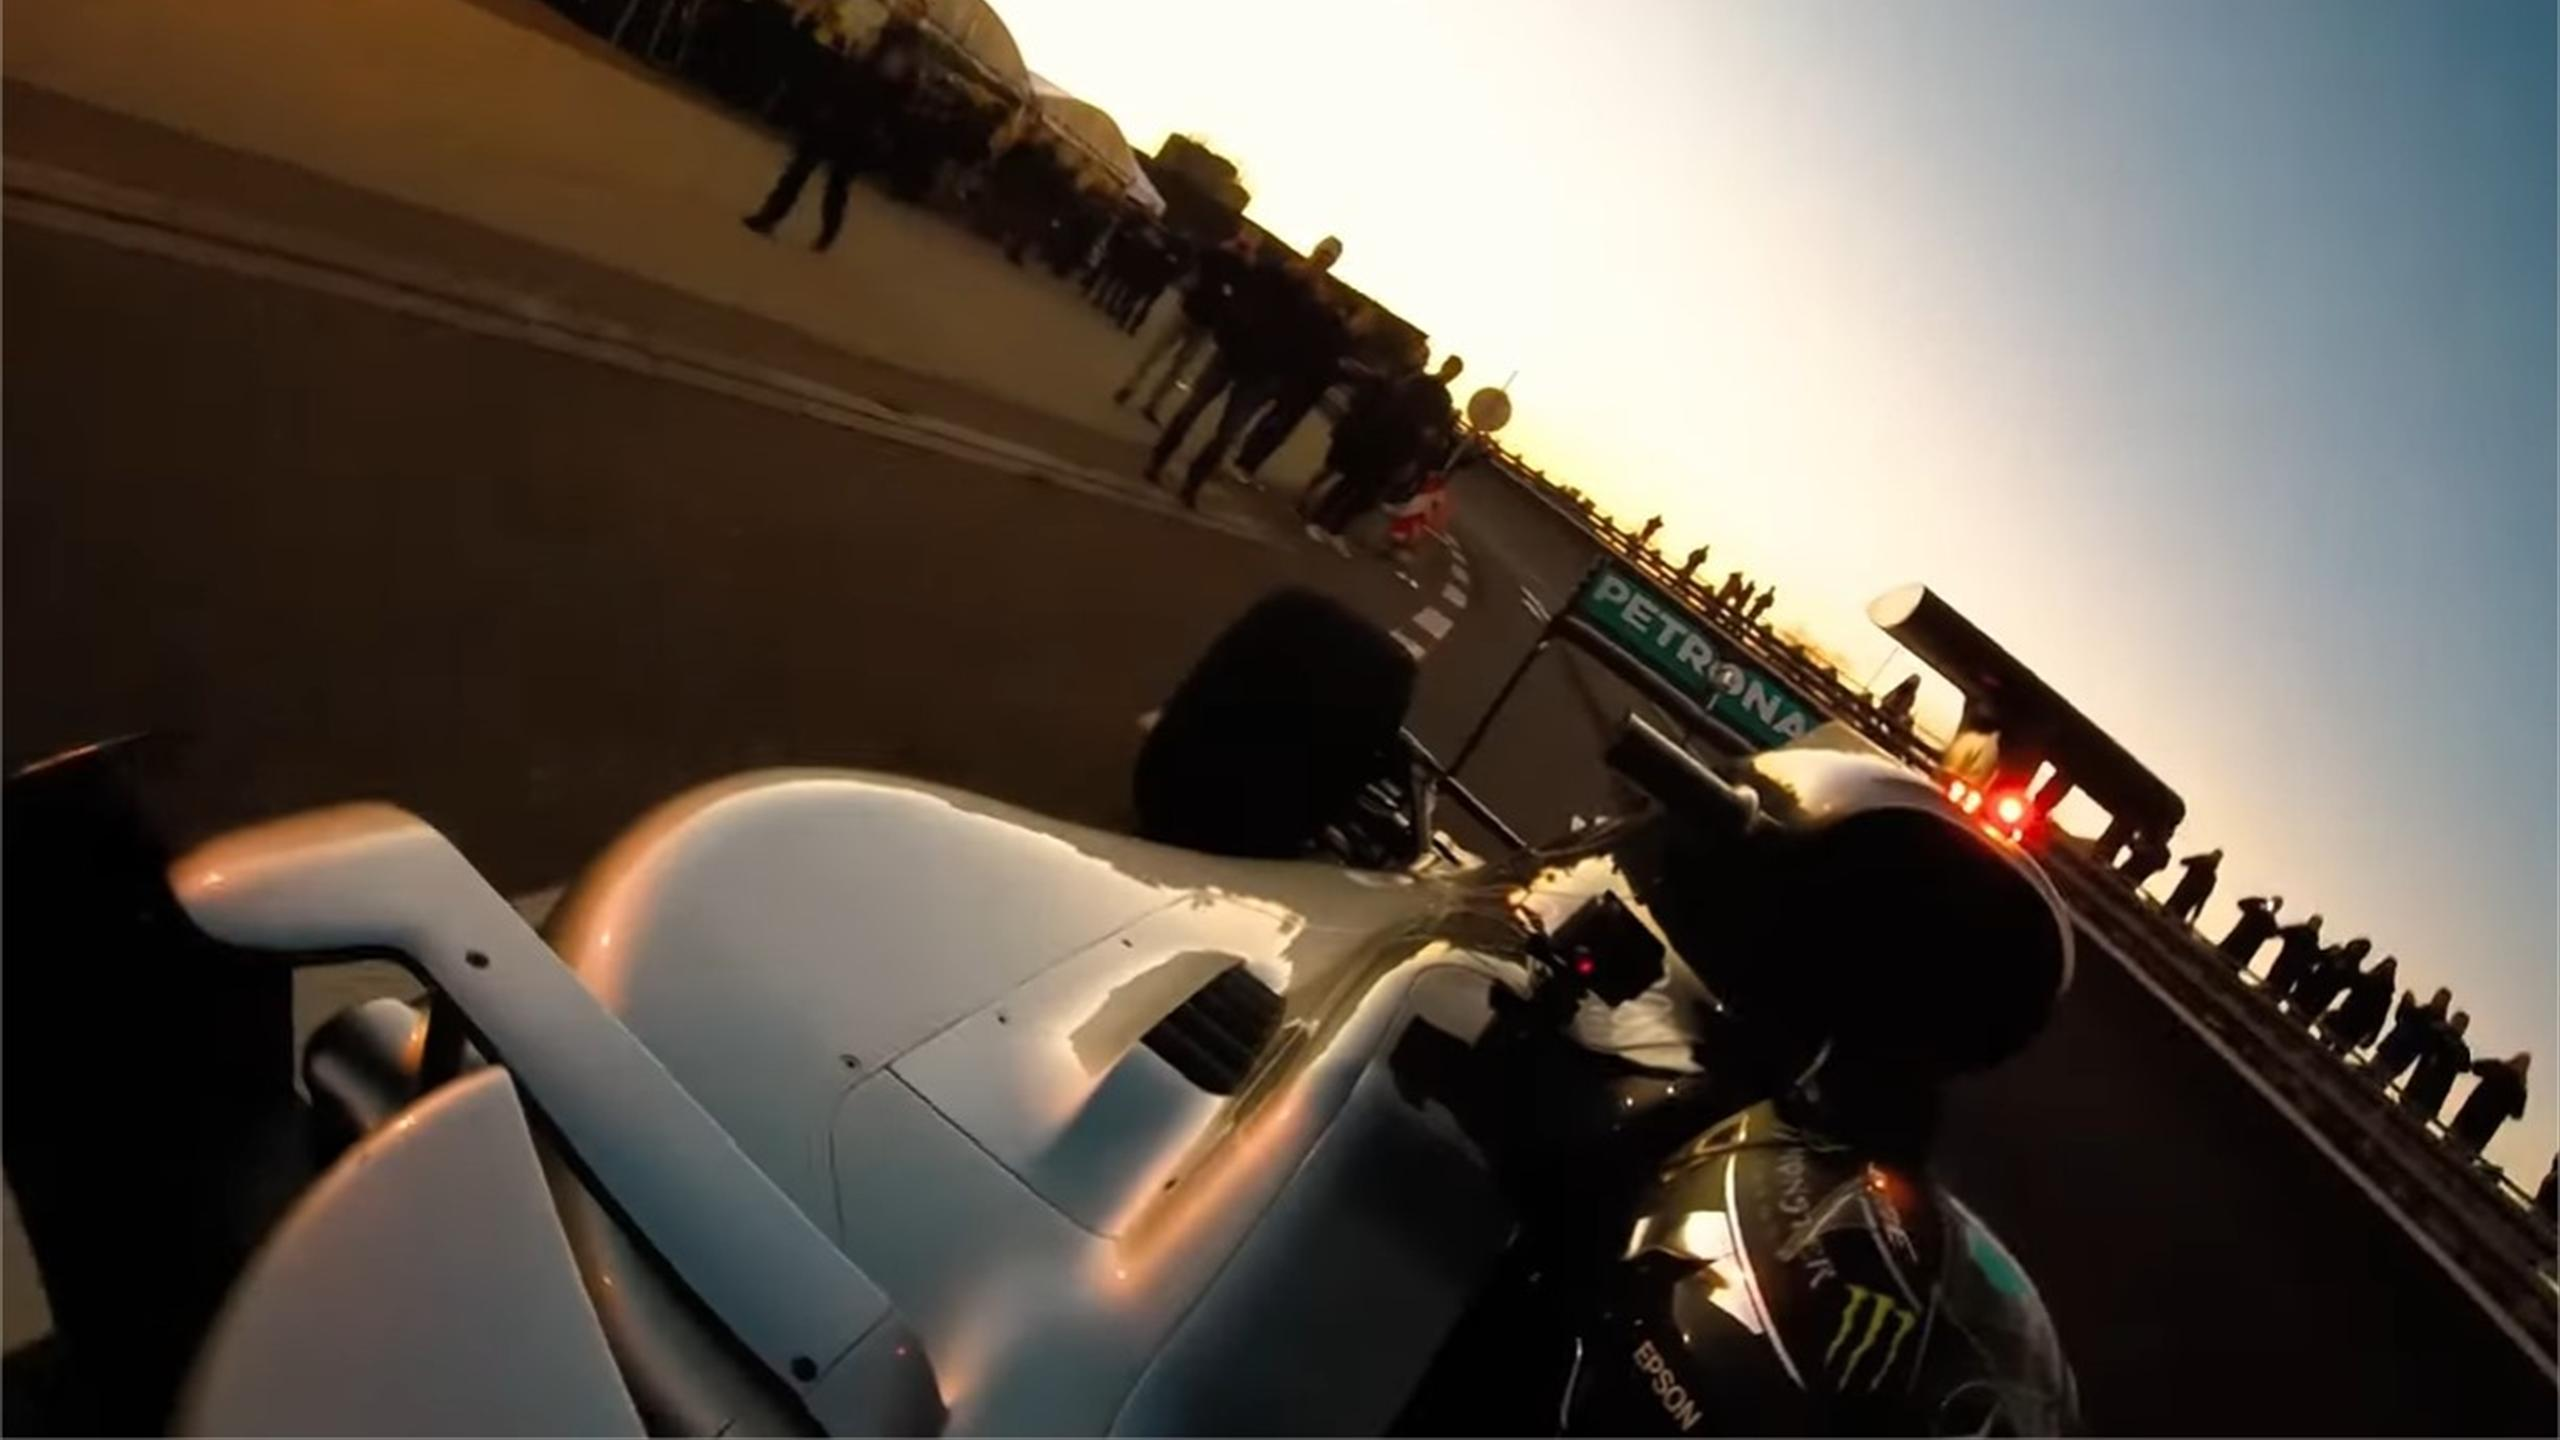 Nico Rosberg marks 'last drive in Mercedes W07' with crazy – and pretty dangerous – selfie (Youtube)